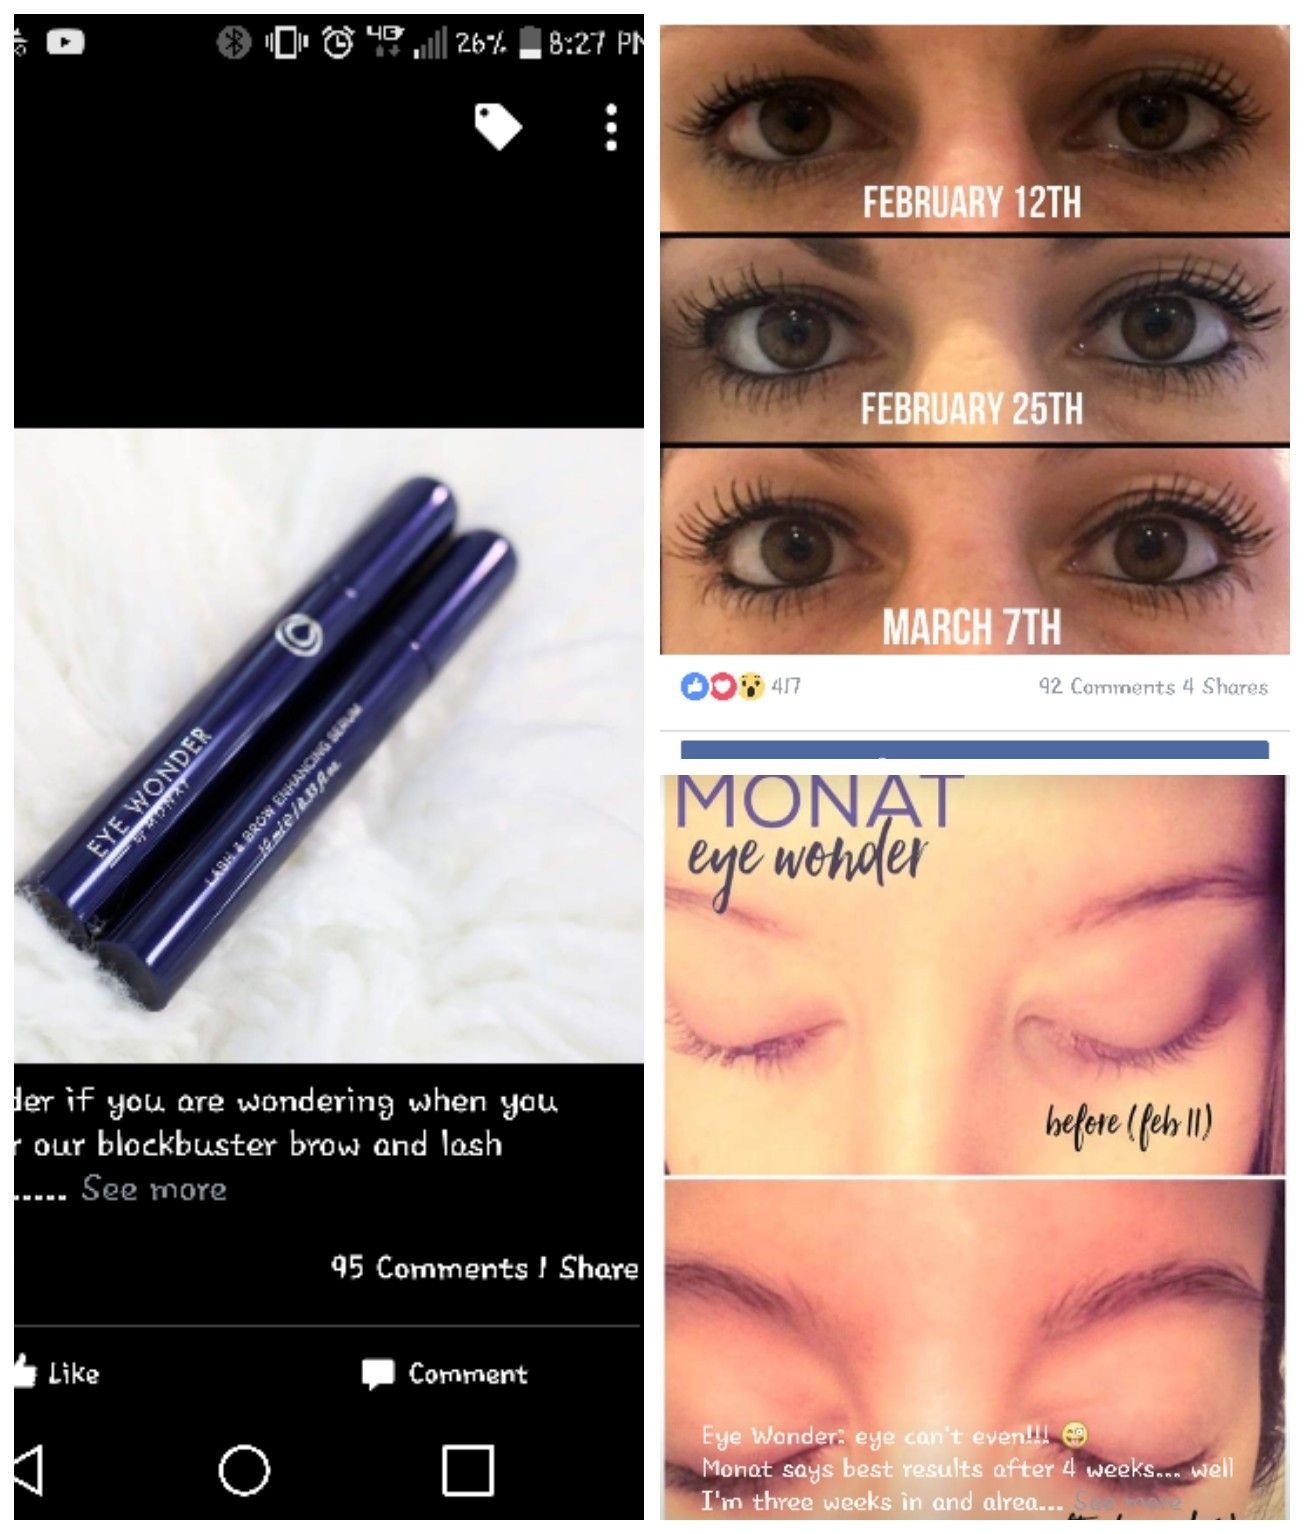 6a277fdb668 Lash and Eyebrow serum. For longer, thicker lashes and help grow brows...be  eye-dolized with EYE WONDER by MONAT www.mymonat.com/corabalbin  #EyeLashesFalse